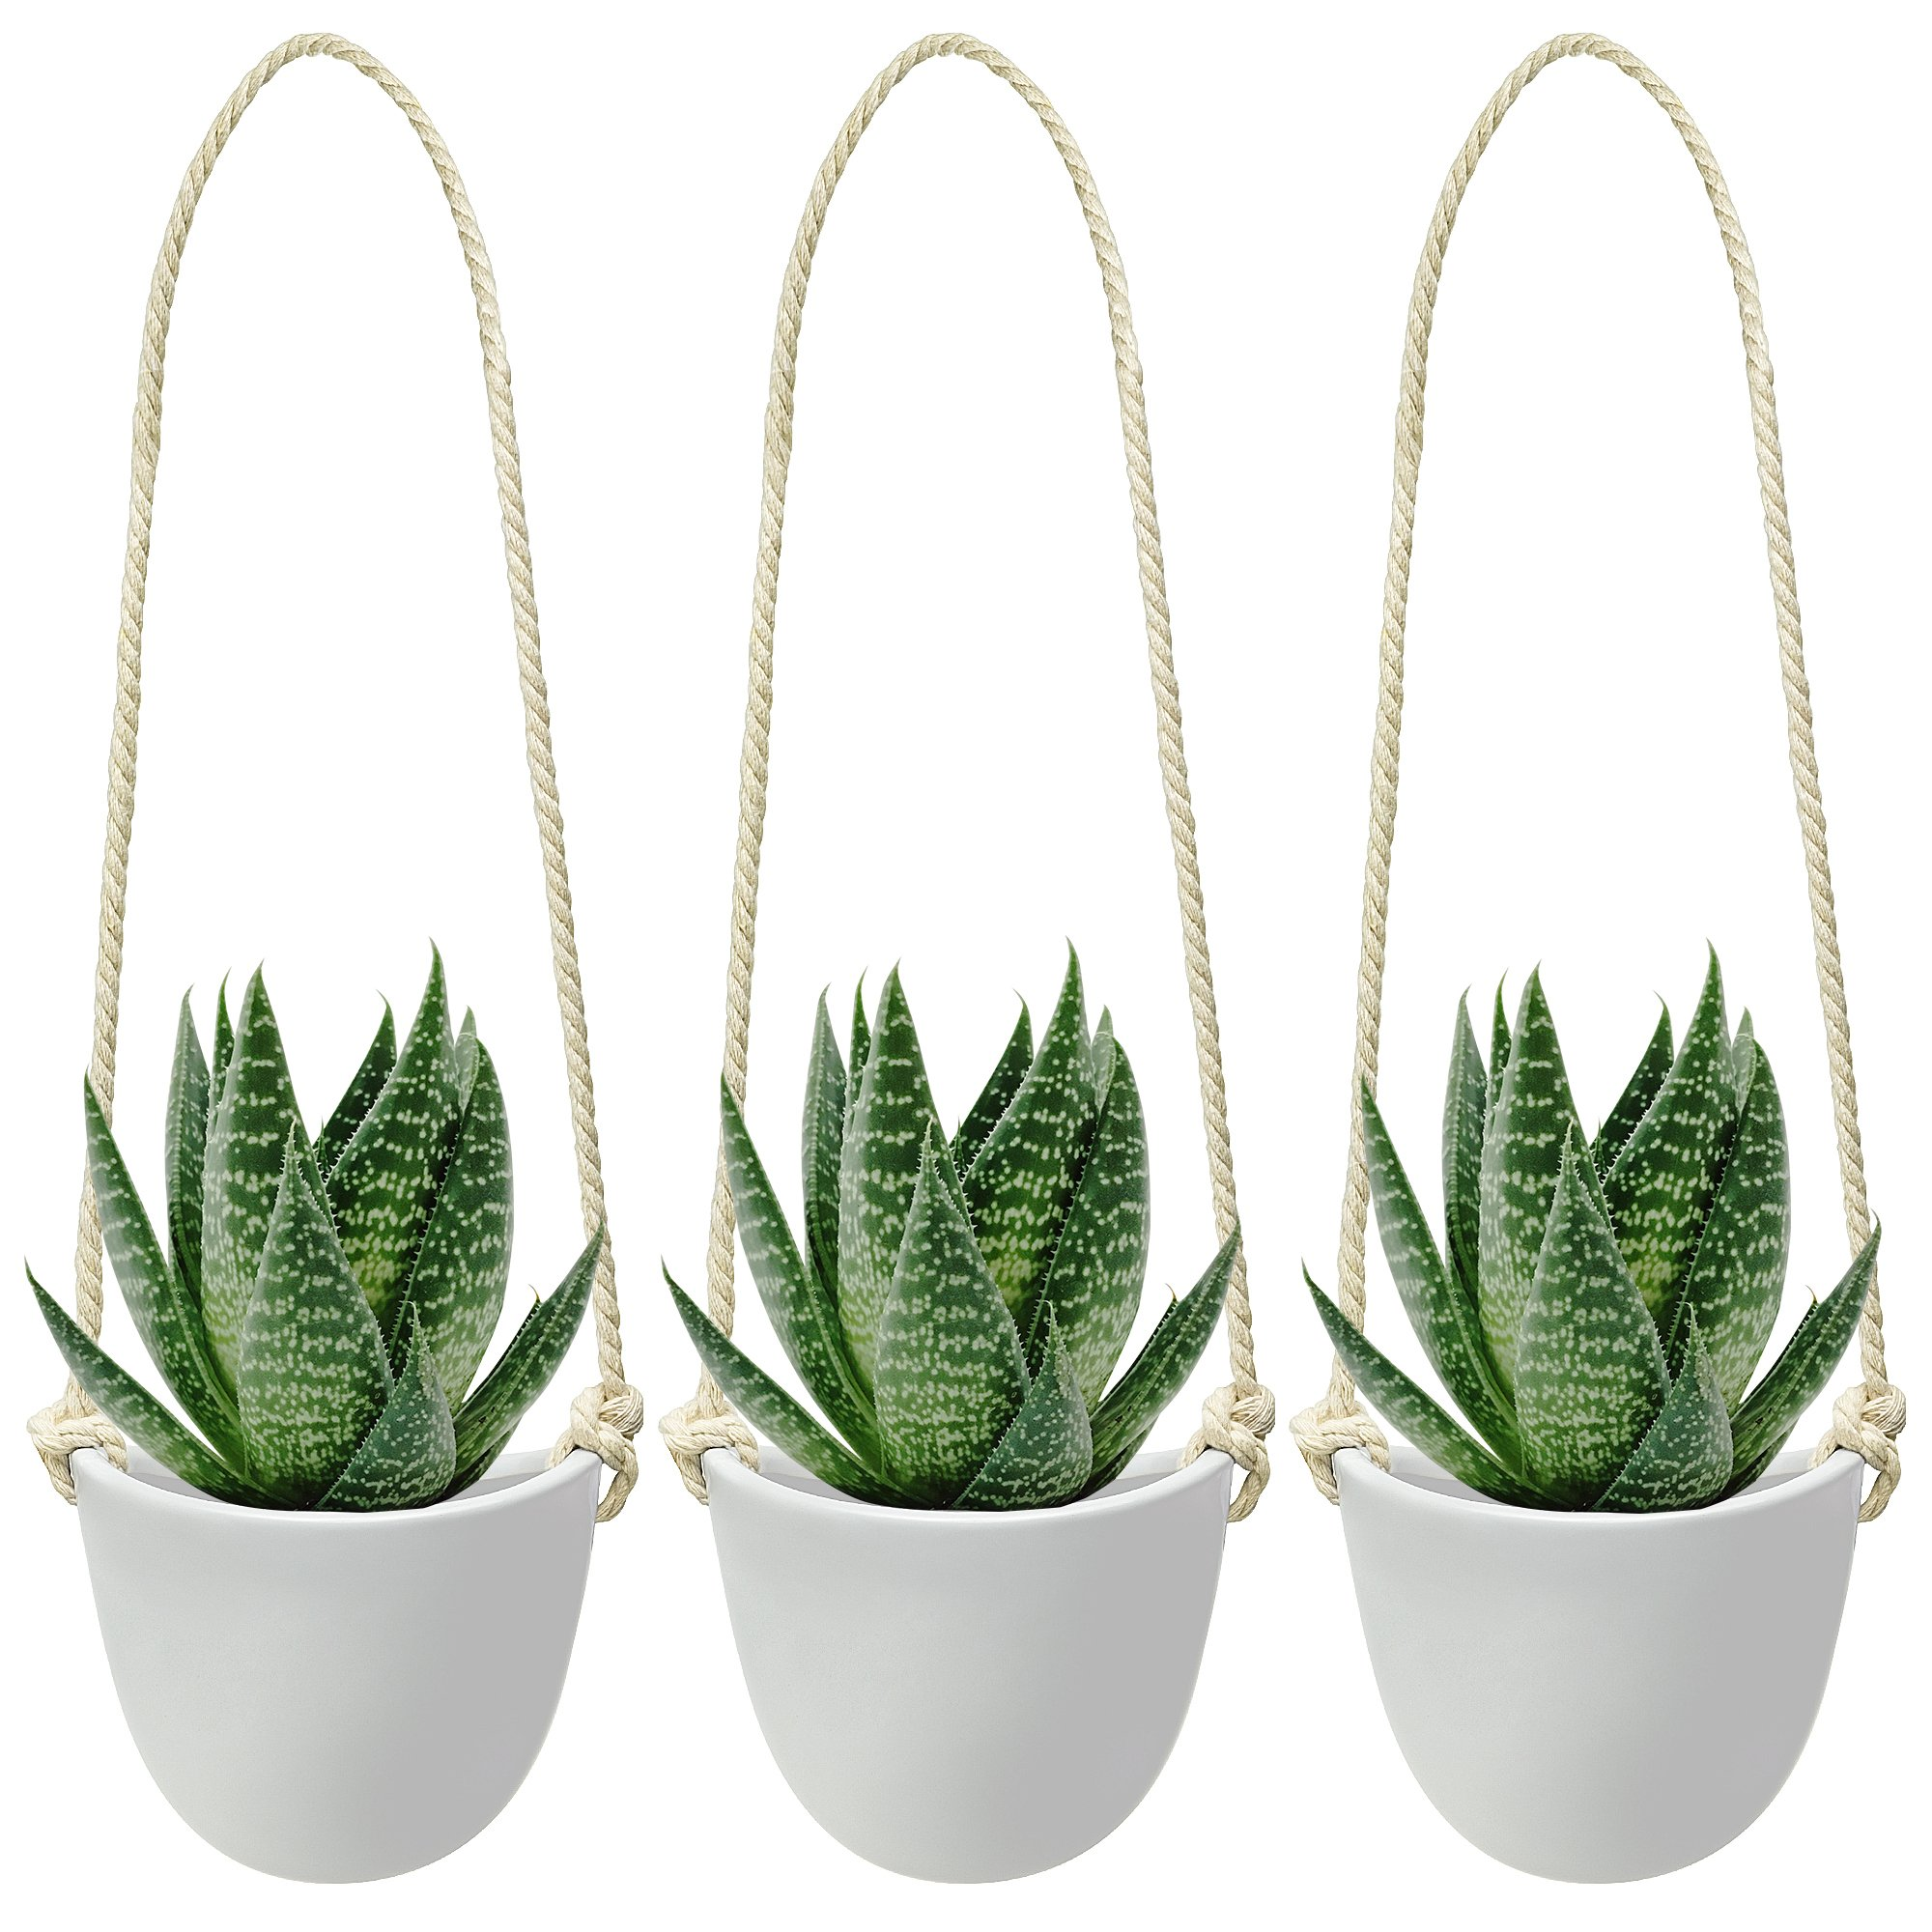 Nellam Ceramic Hanging Planters - Modern White Porcelain Containers - 3 pcs Decorative Pots for Indoor & Outdoor Use - Wall Decor Vase for Garden Flowers, Herbs, Plants and Succulents by Nellam